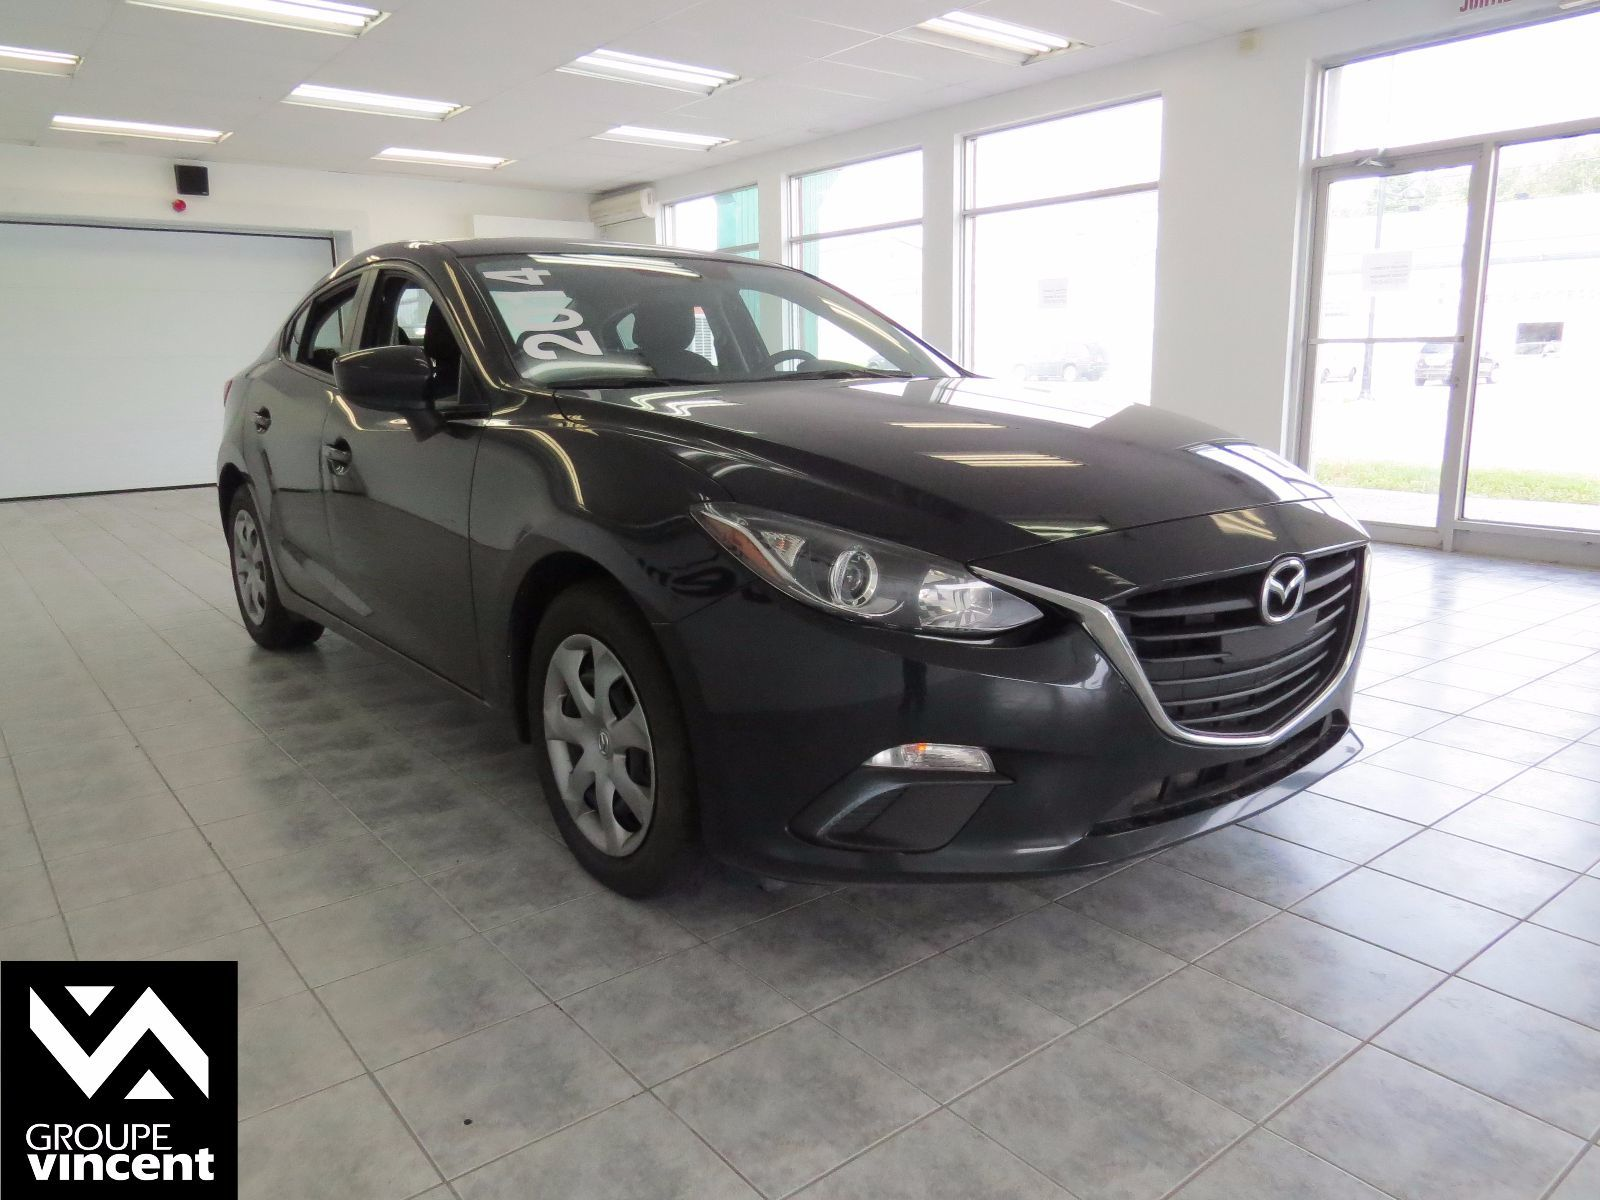 mazda 3 gx sky bluetooth 2014 d 39 occasion trois. Black Bedroom Furniture Sets. Home Design Ideas